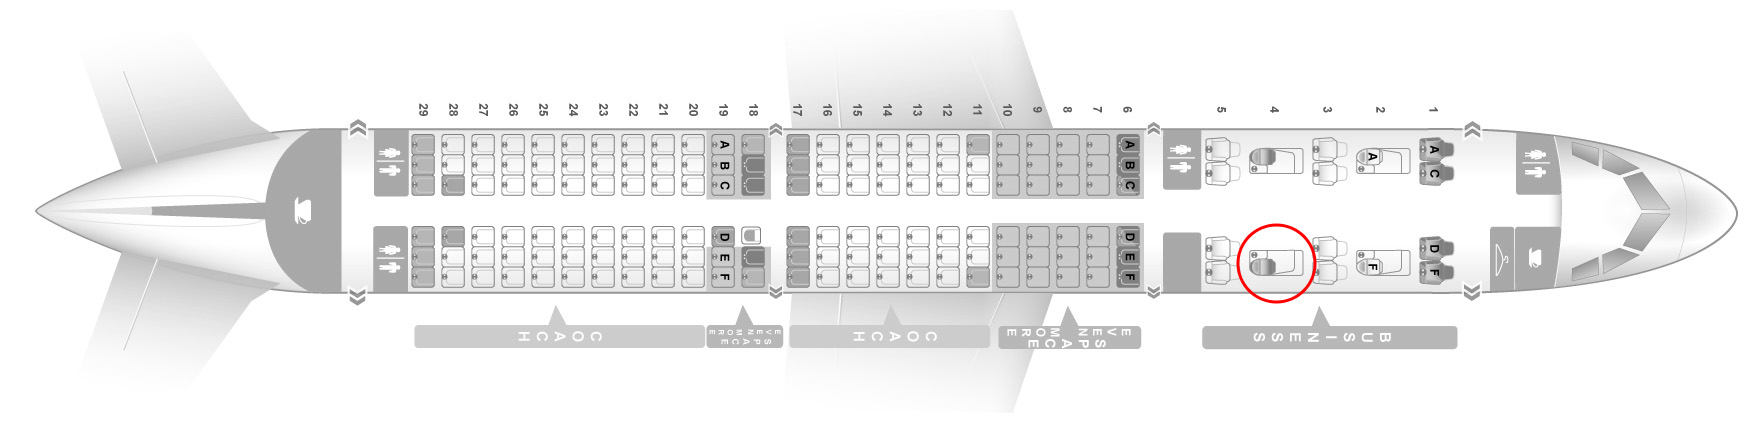 JetBlue A321 seat map